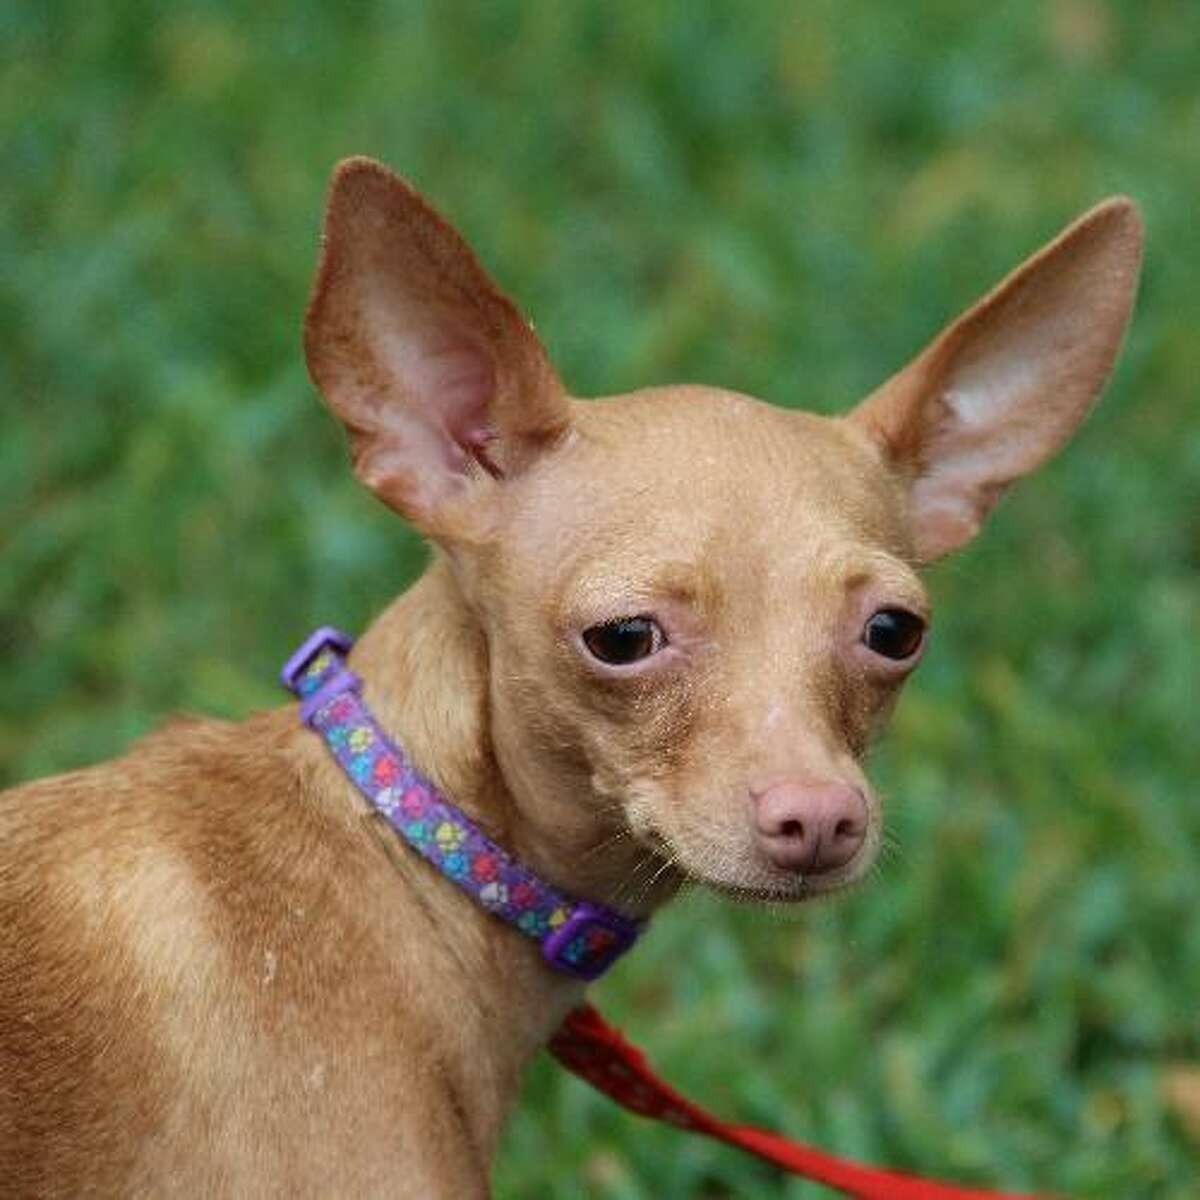 Lucy is a Chihuahua mix, about 2 years old and weighs all of 7 pounds. She's friendly and looking for a permanent home. For information, call the Helotes Humane Society. March 2015